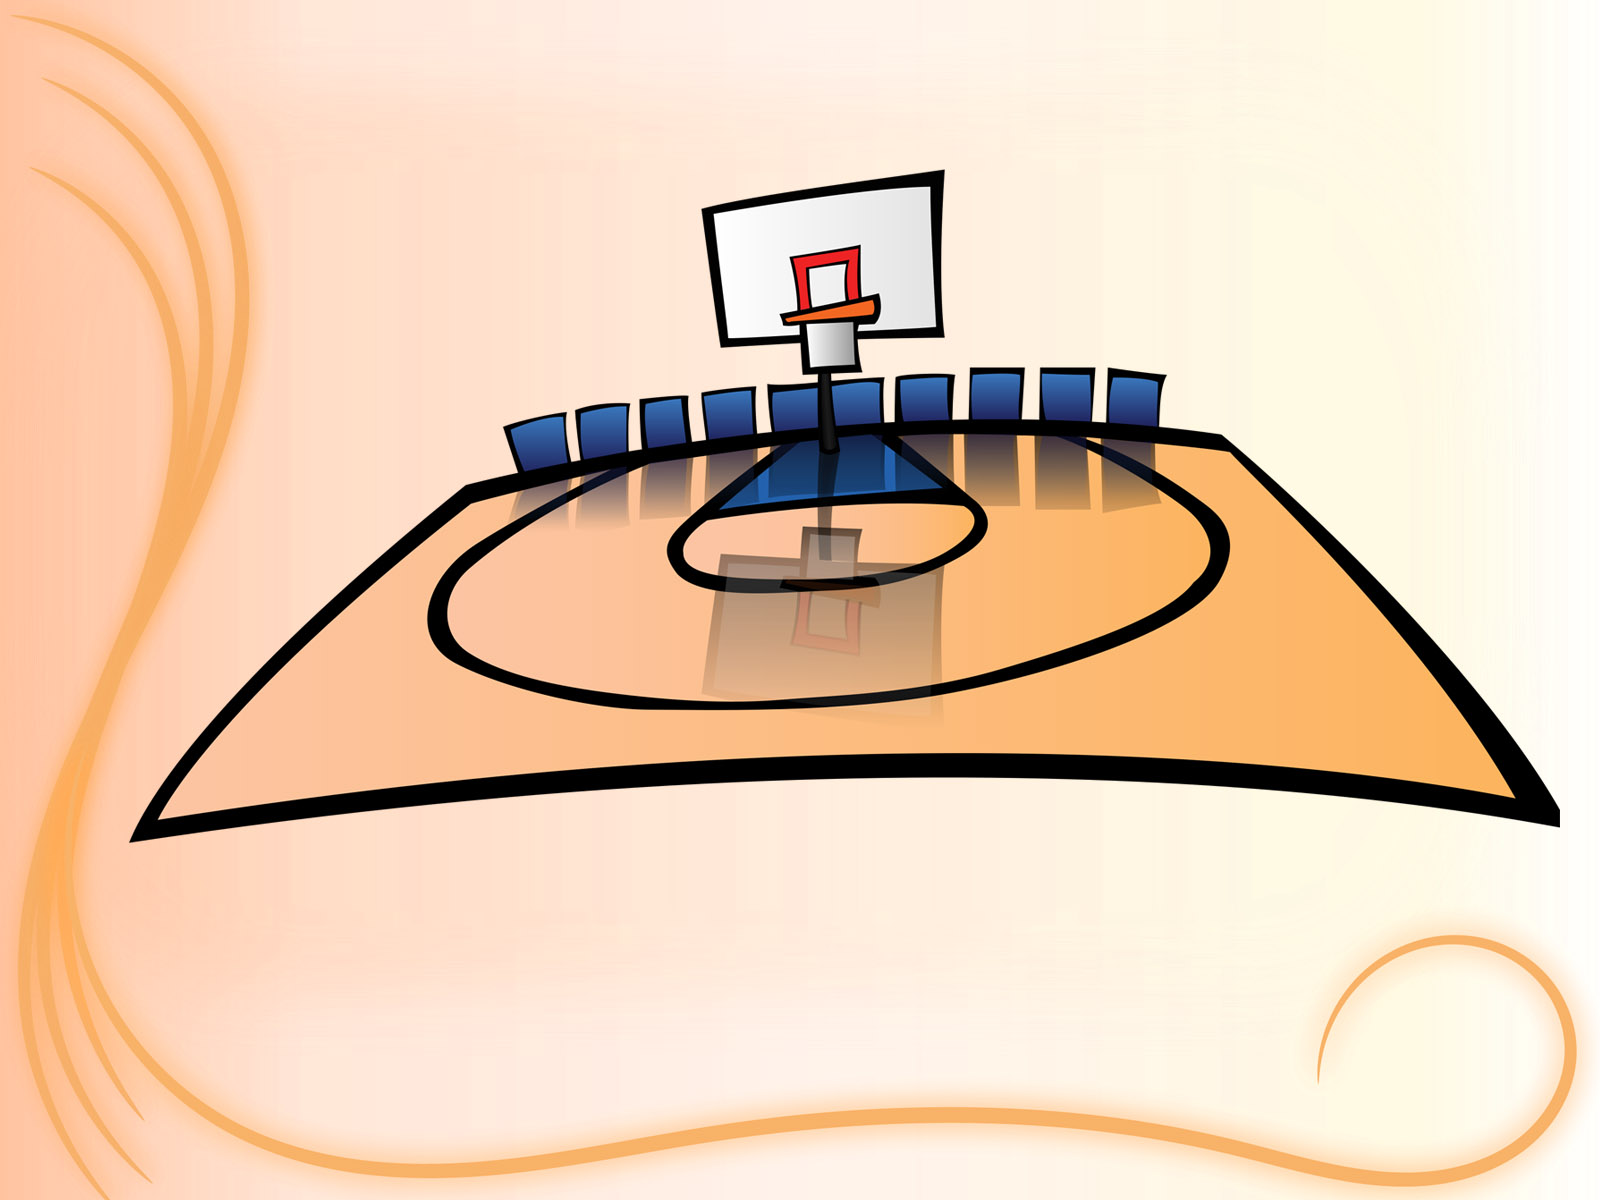 basketball court ppt backgrounds - sports templates - ppt grounds, Modern powerpoint